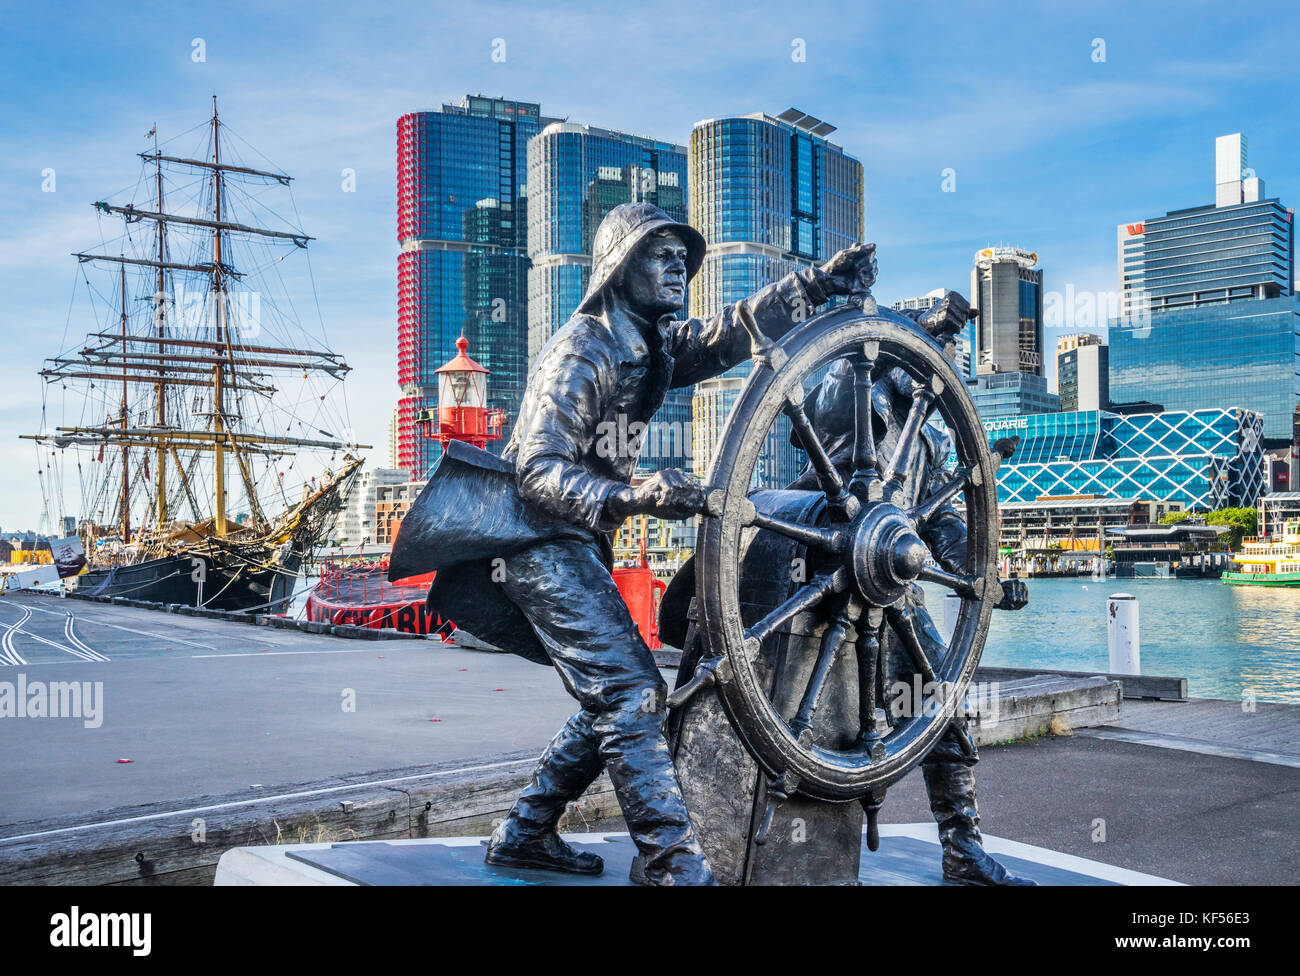 Australia, New South Wales, Sydney, Darling Harbour, bronce sculpture to celebrate windjammer sailors at the Wharf - Stock Image